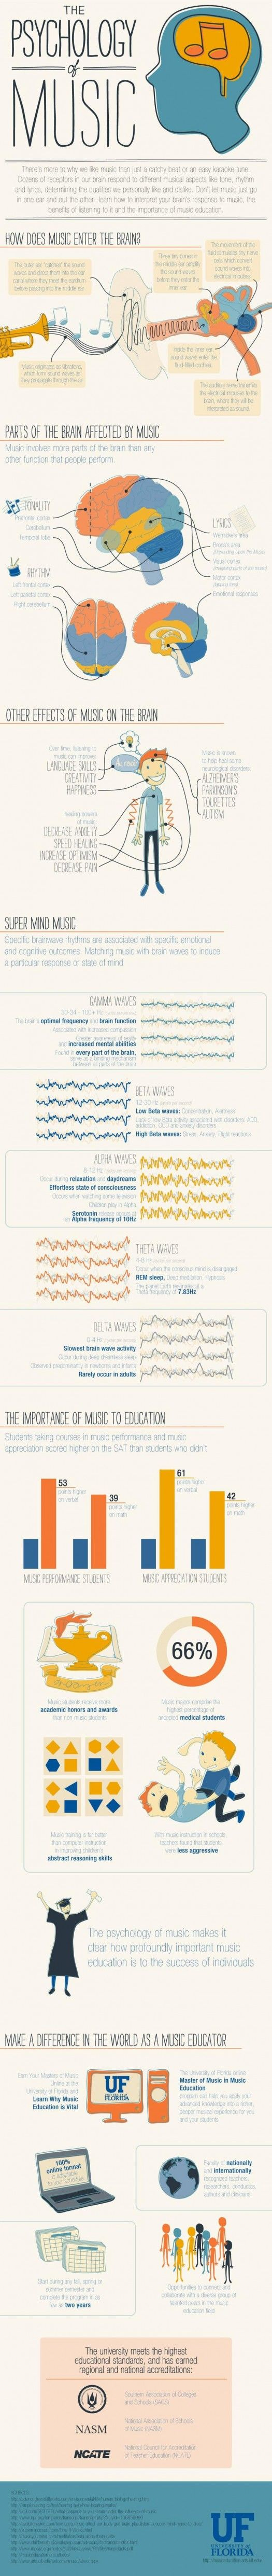 The Psychology of Music. Ignore the second half. Sorry, but music isn't a miracle worker. Listening to it won't instantly raise your grades.